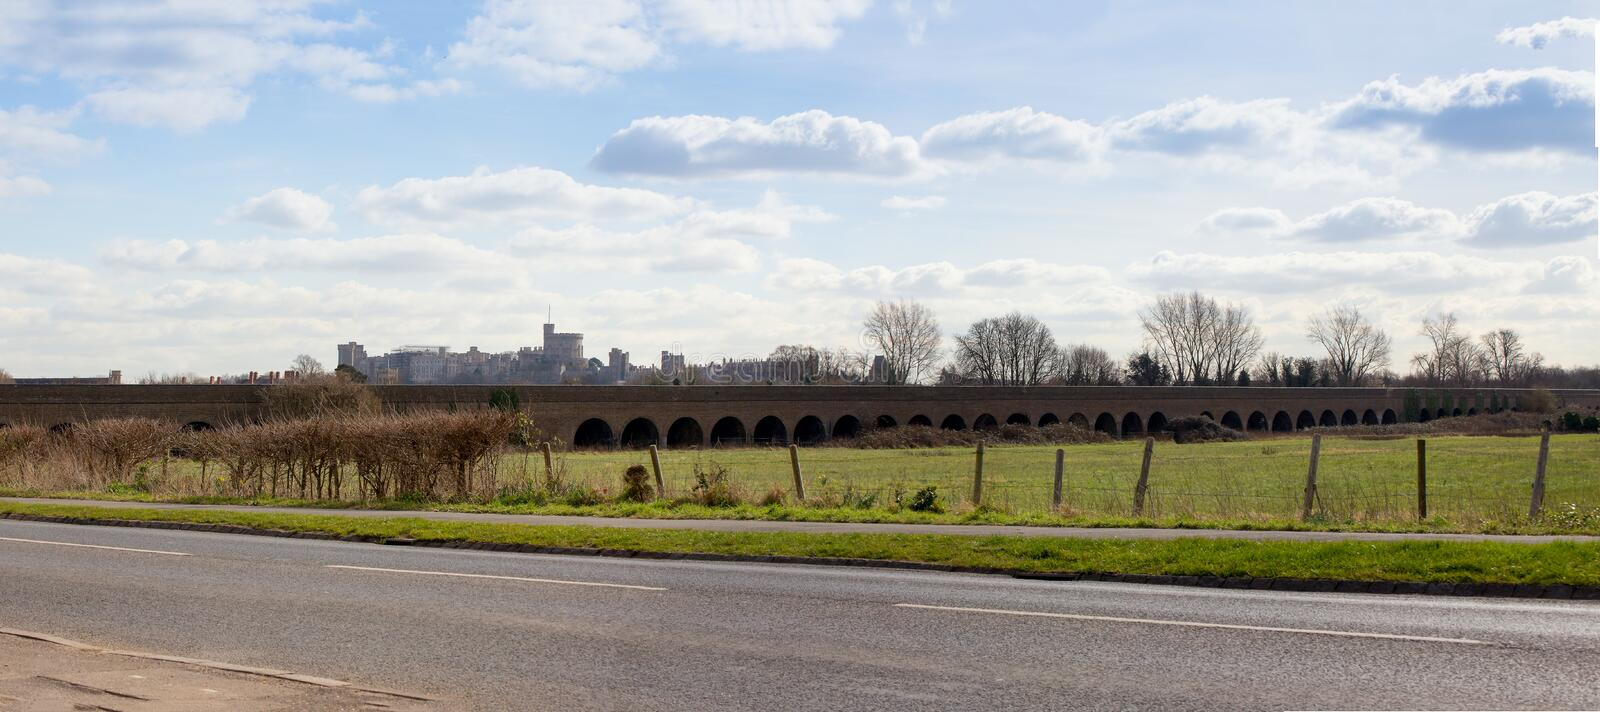 Windsor Railway Viaduct and Castle. View of the viaduct which carries the railway branch line to Windsor across the Eton flood plains. Windsor castle is visible stock photos